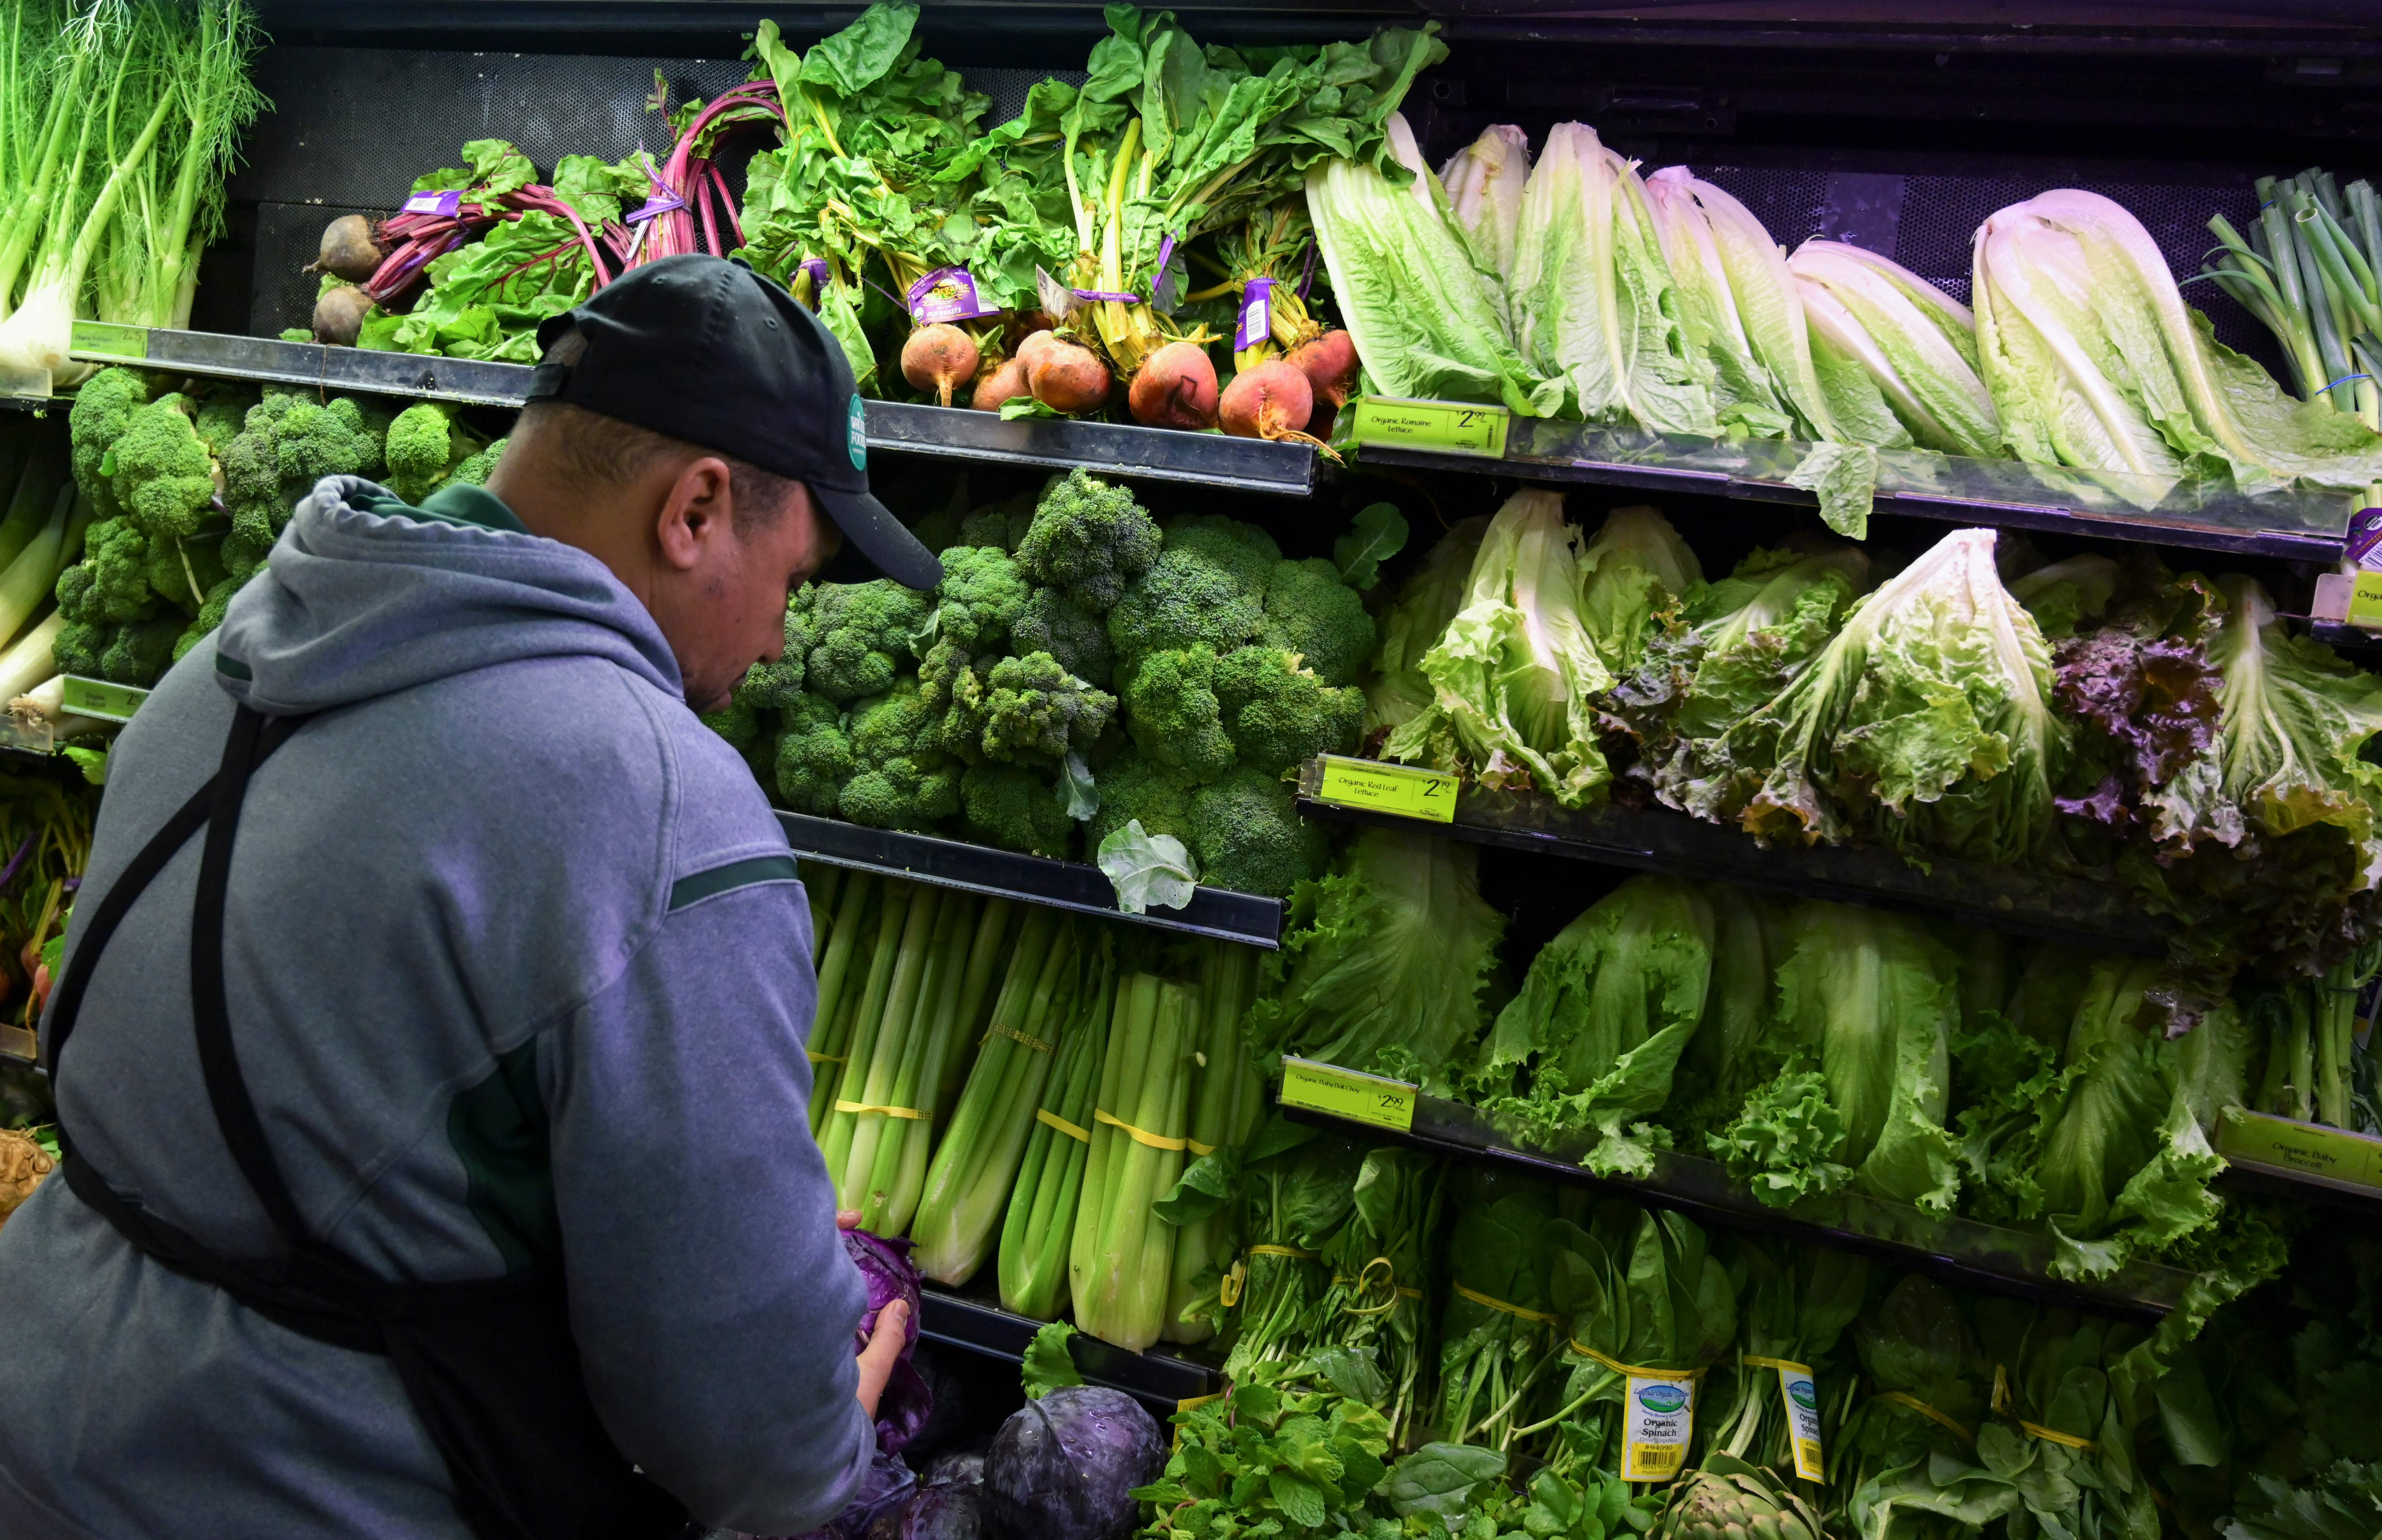 Lettuce prices soar amid E  coli outbreak linked to romaine